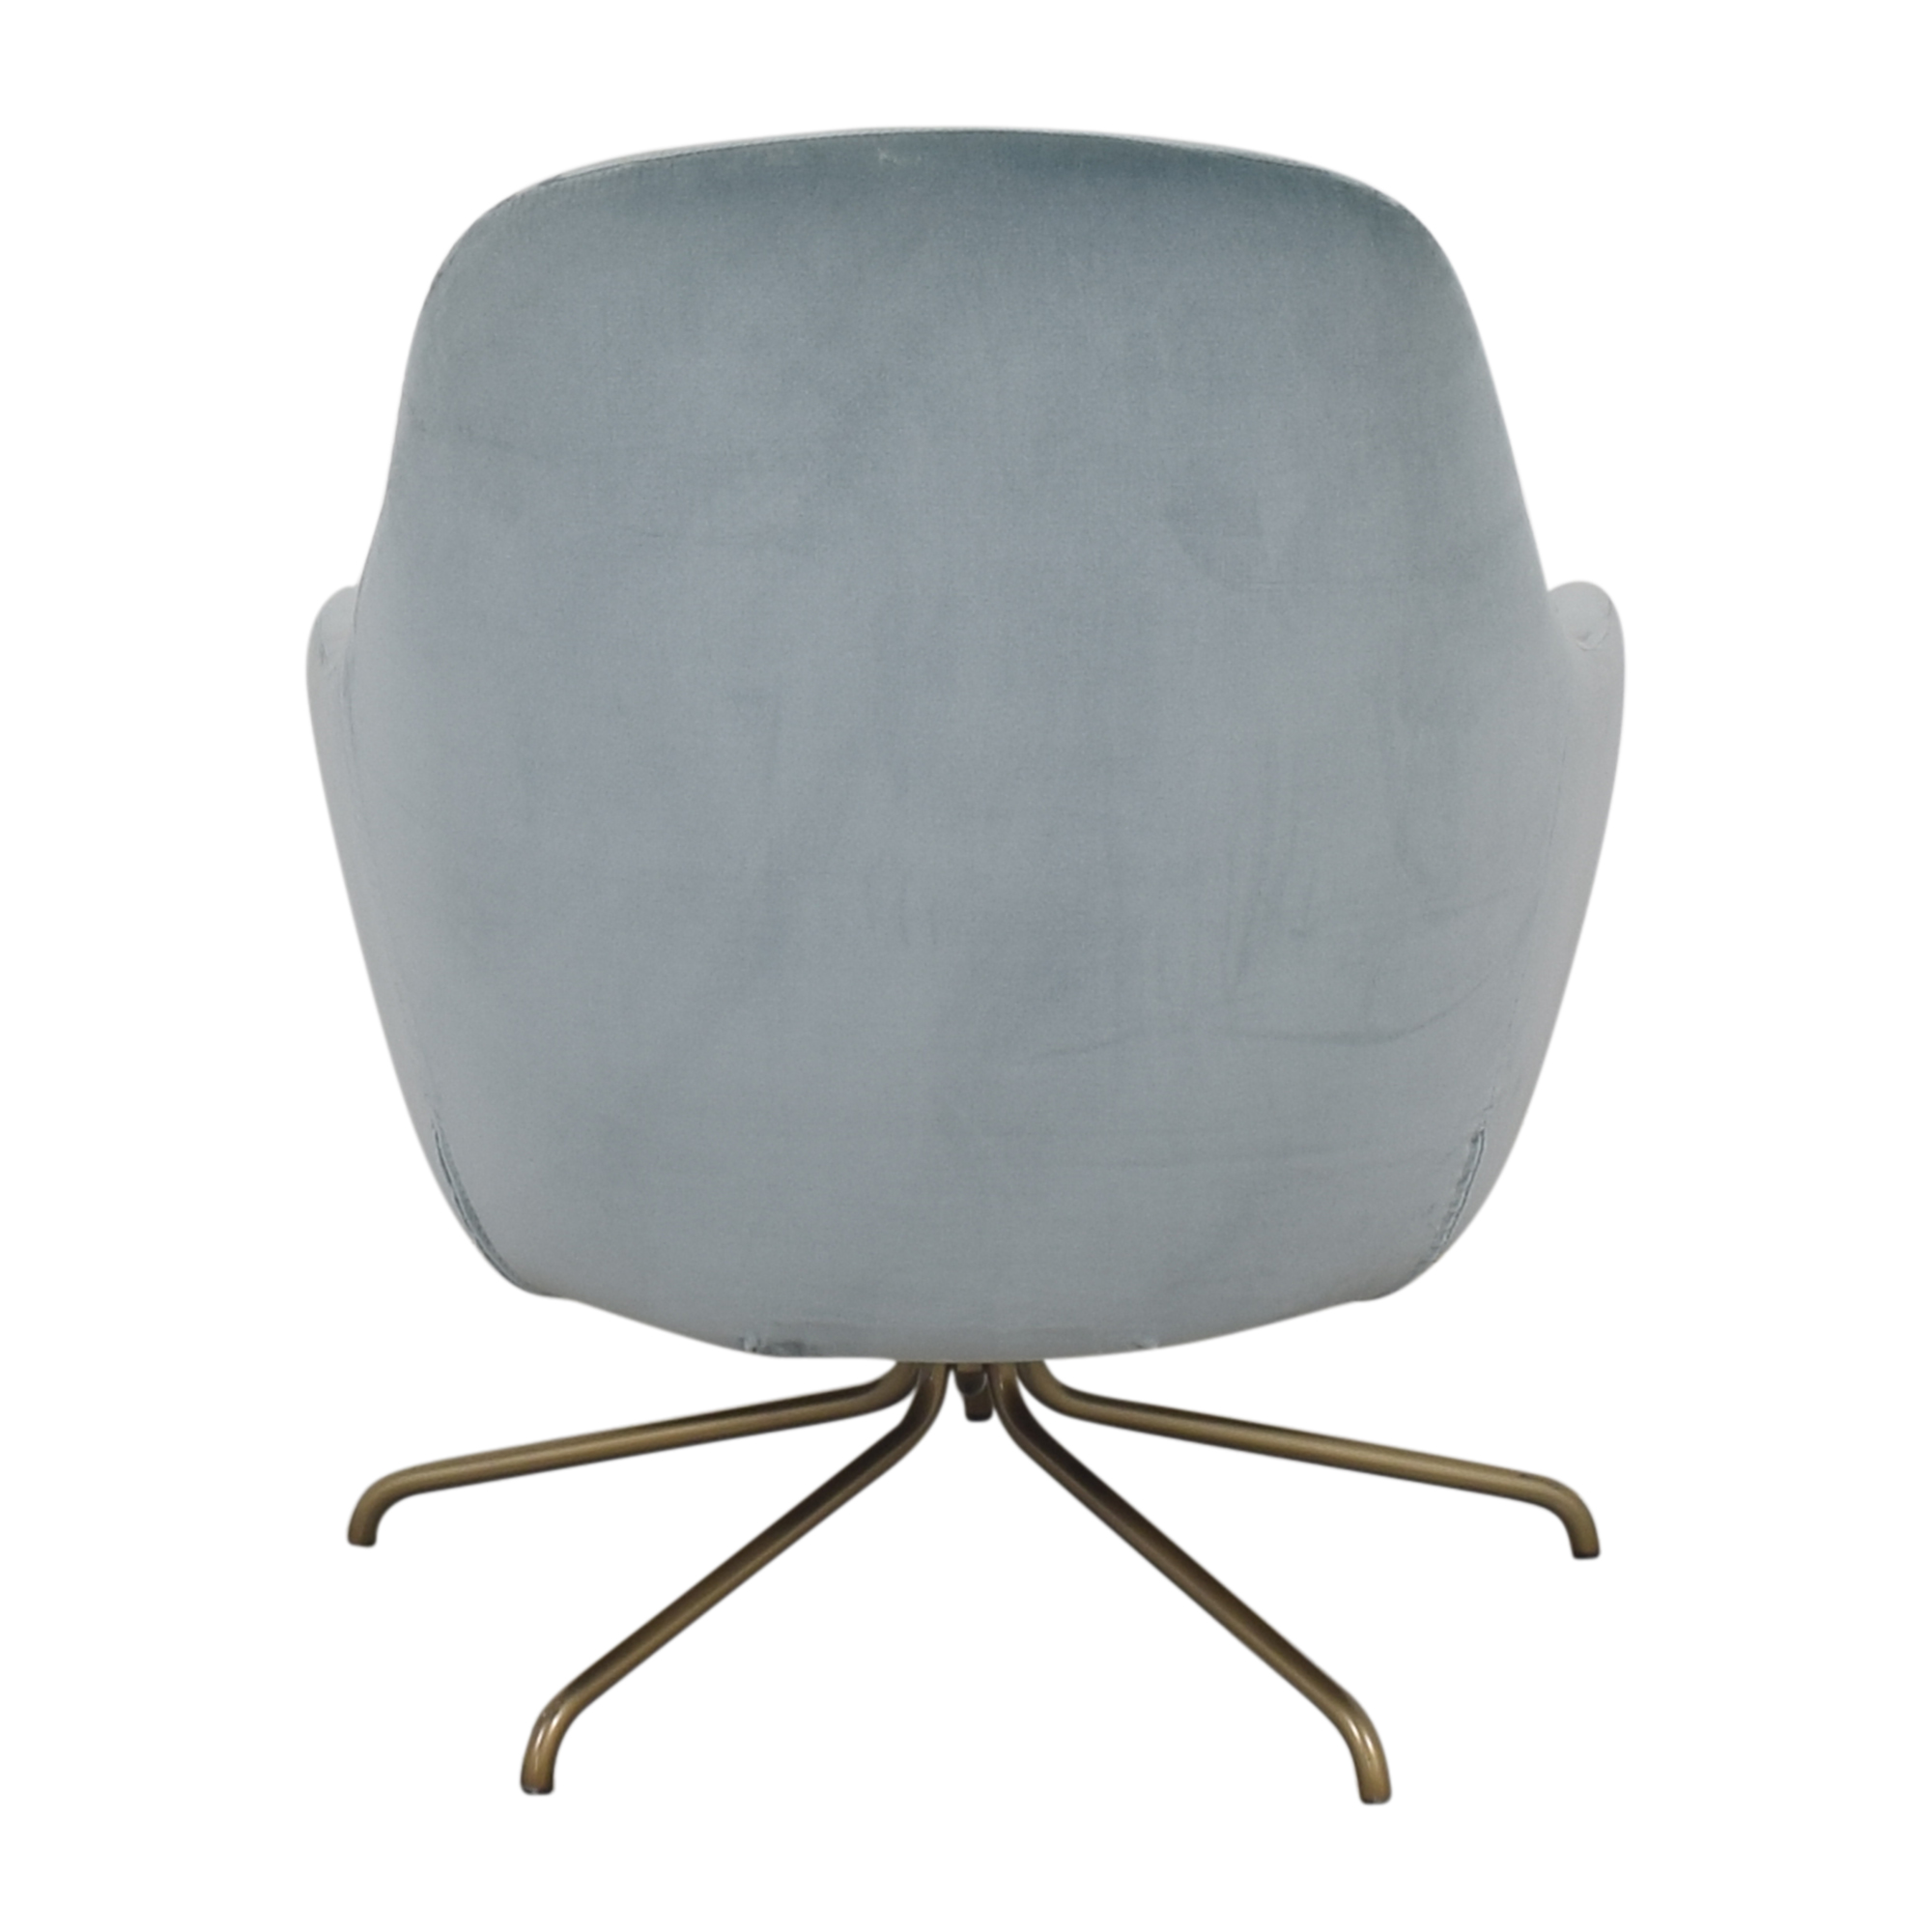 West Elm Valentina Swivel Chair / Chairs